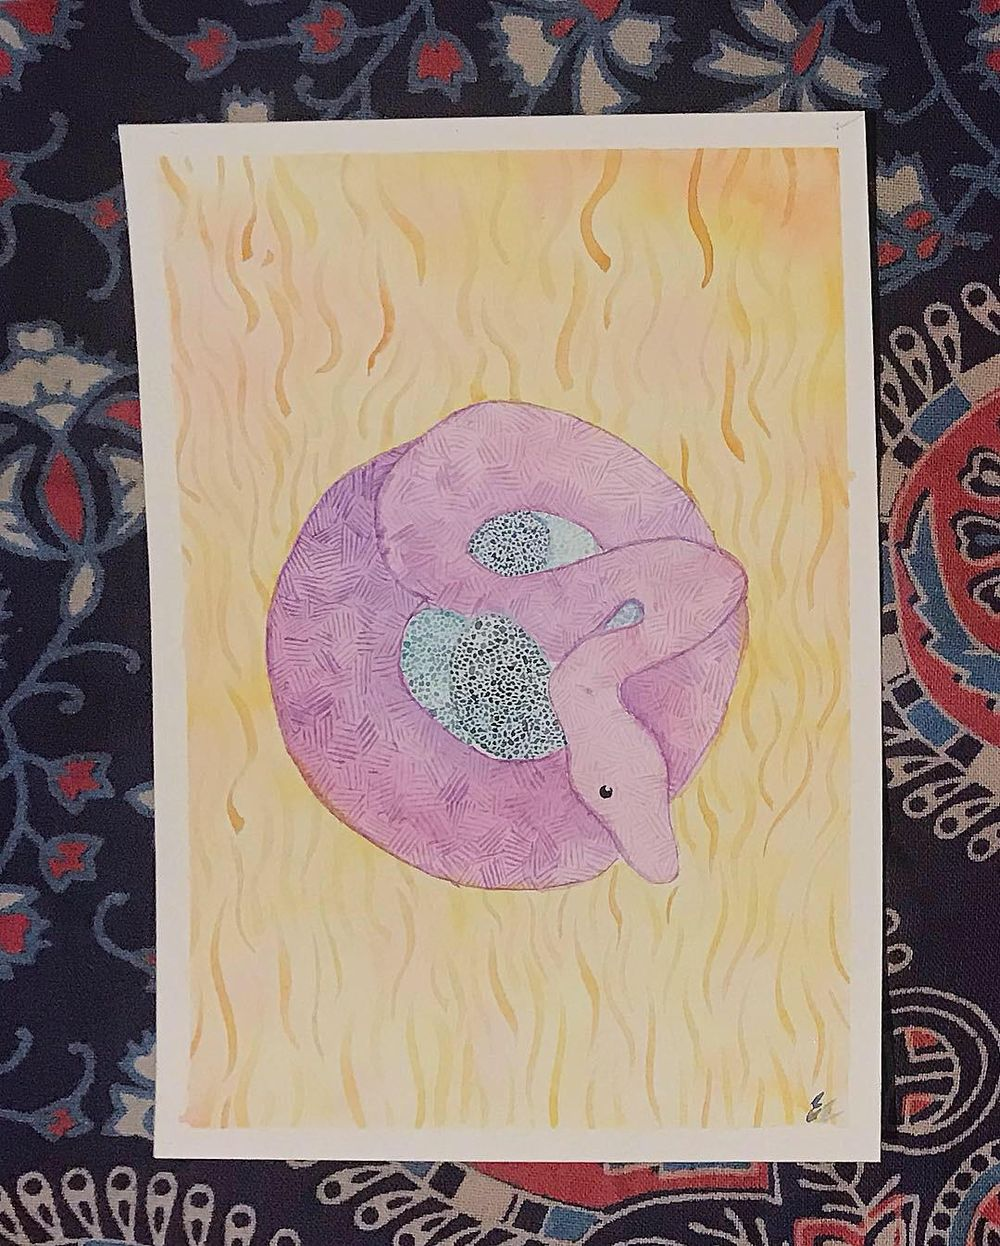 Metallic pythons and eggs - image 7 - student project